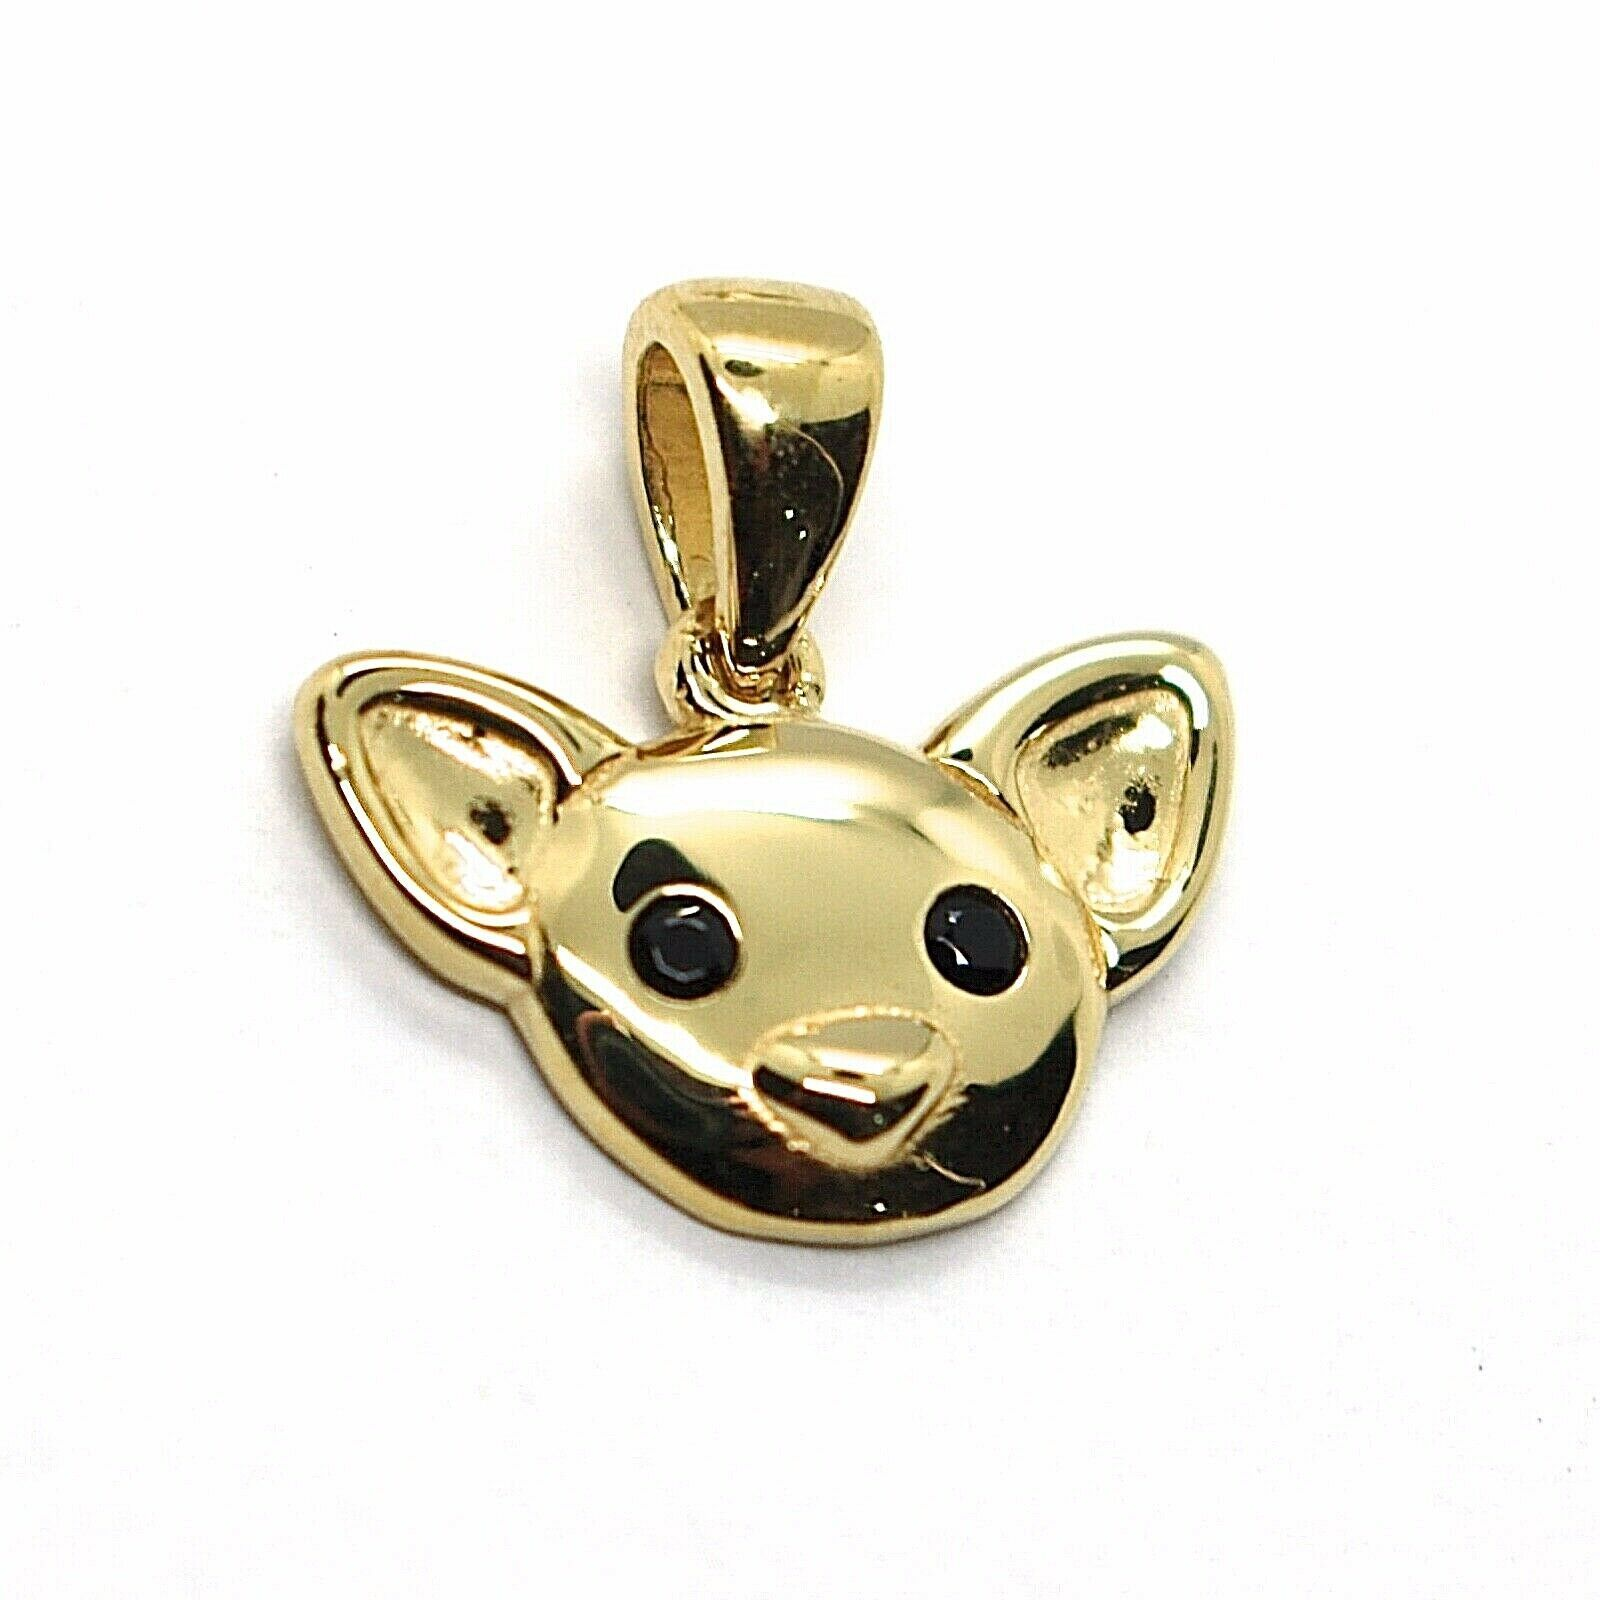 Yellow Gold Pendant 750 18K, Pendant, Dog, Chihuahua, Zircon Black, Solid